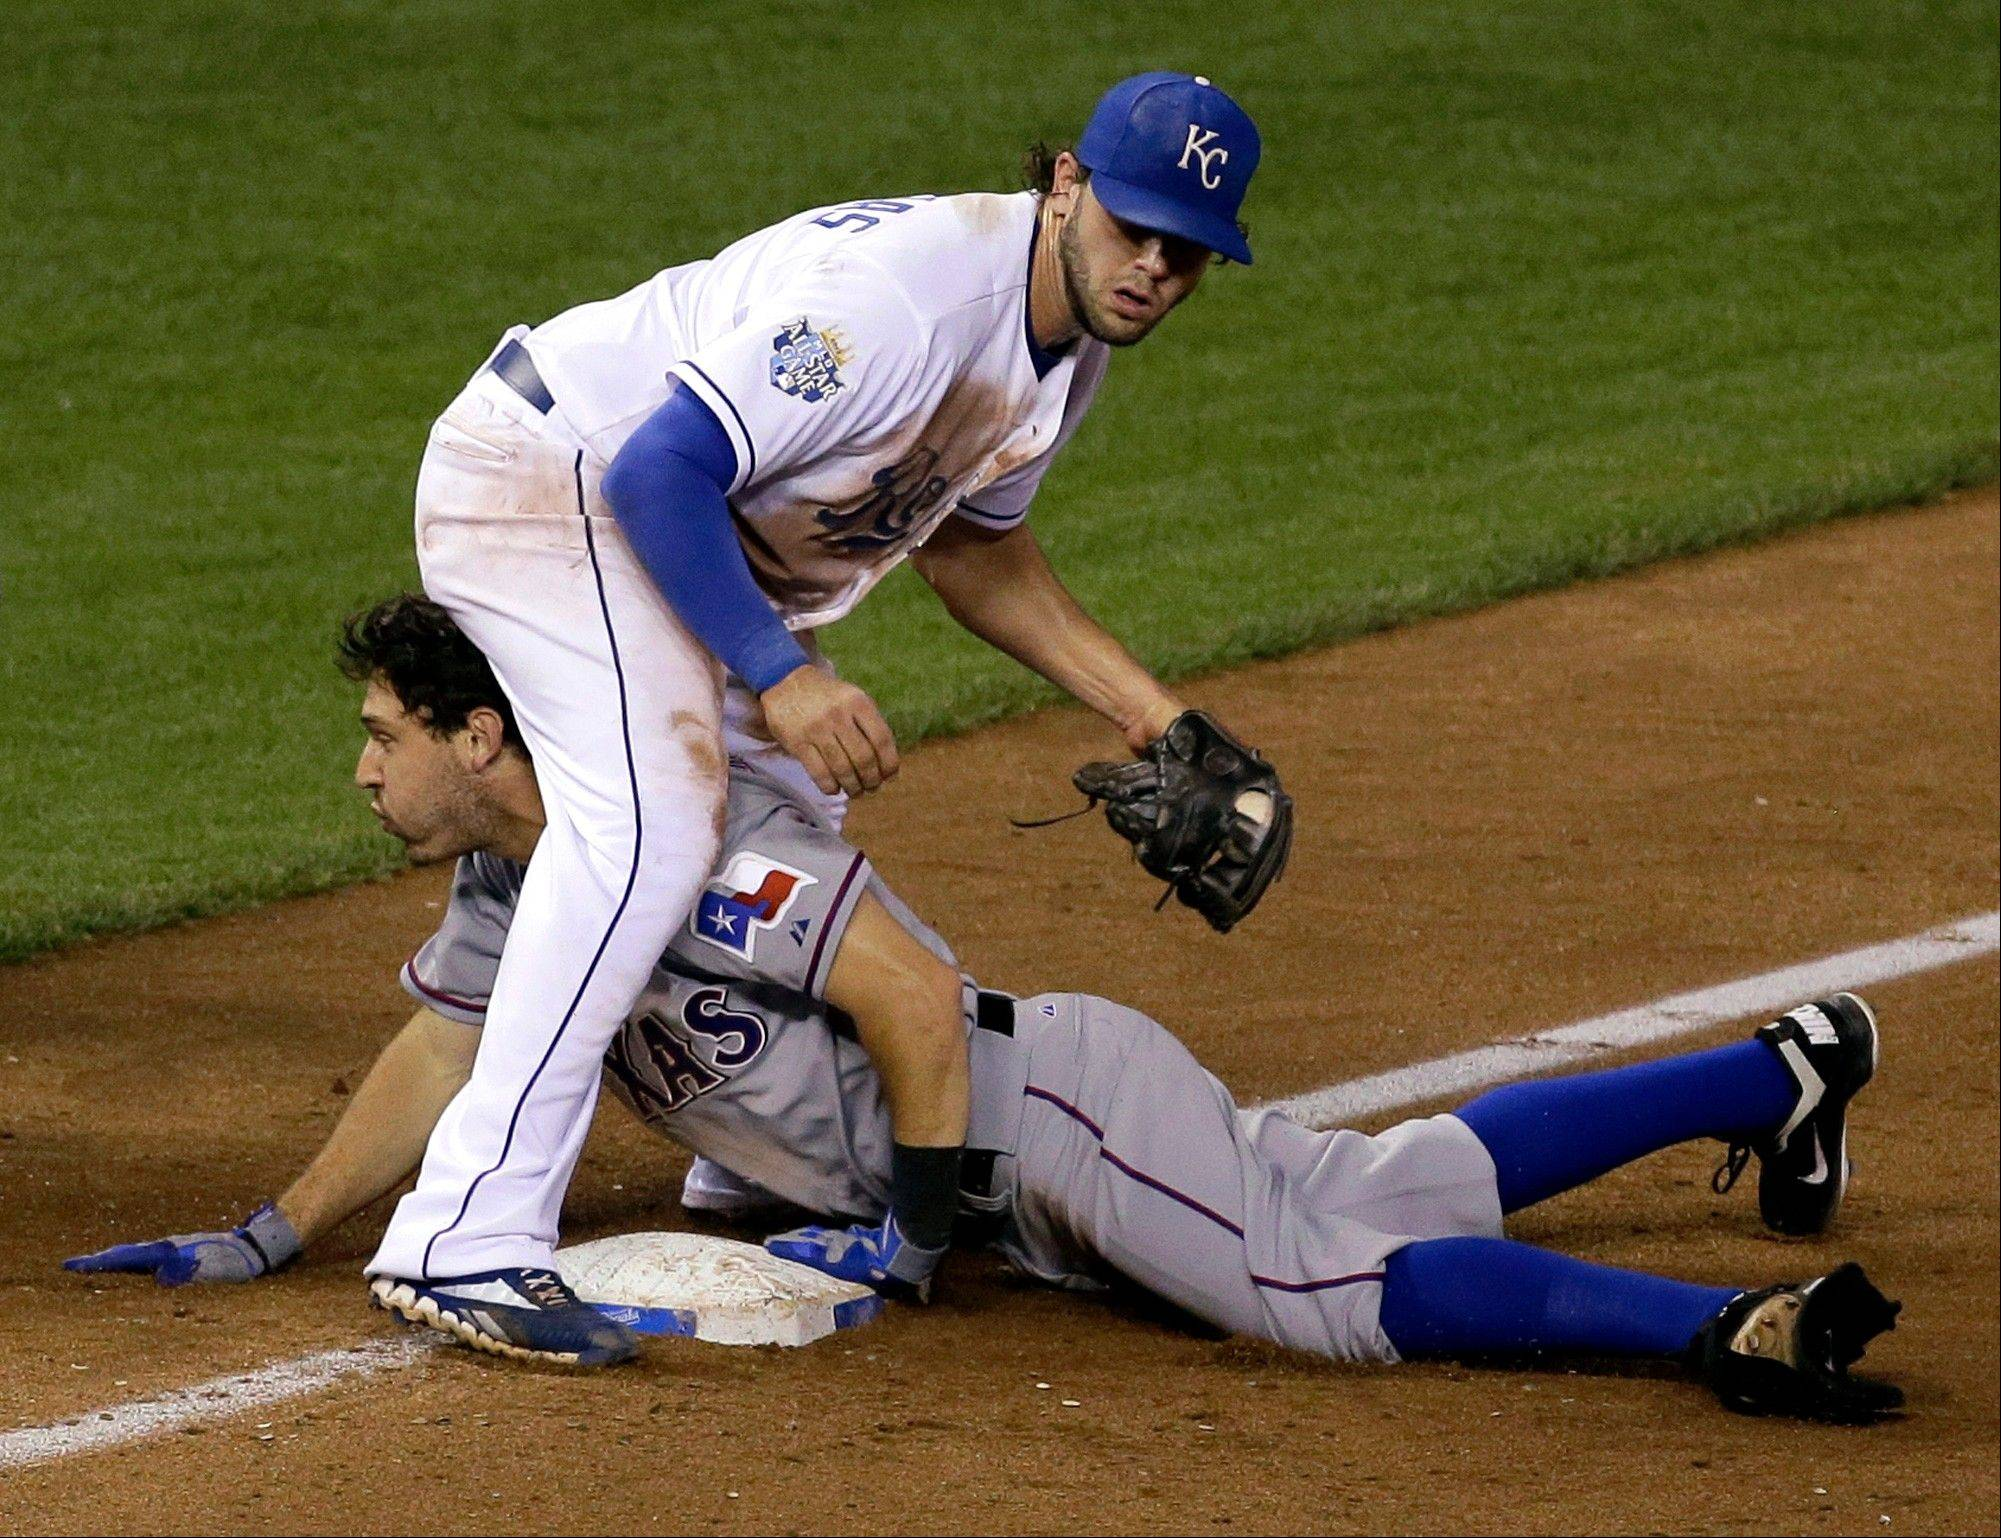 The Rangers' Ian Kinsler beats the tag by Royals third baseman Mike Moustakas for a triple during the 10th inning Thursday night in Kansas City.